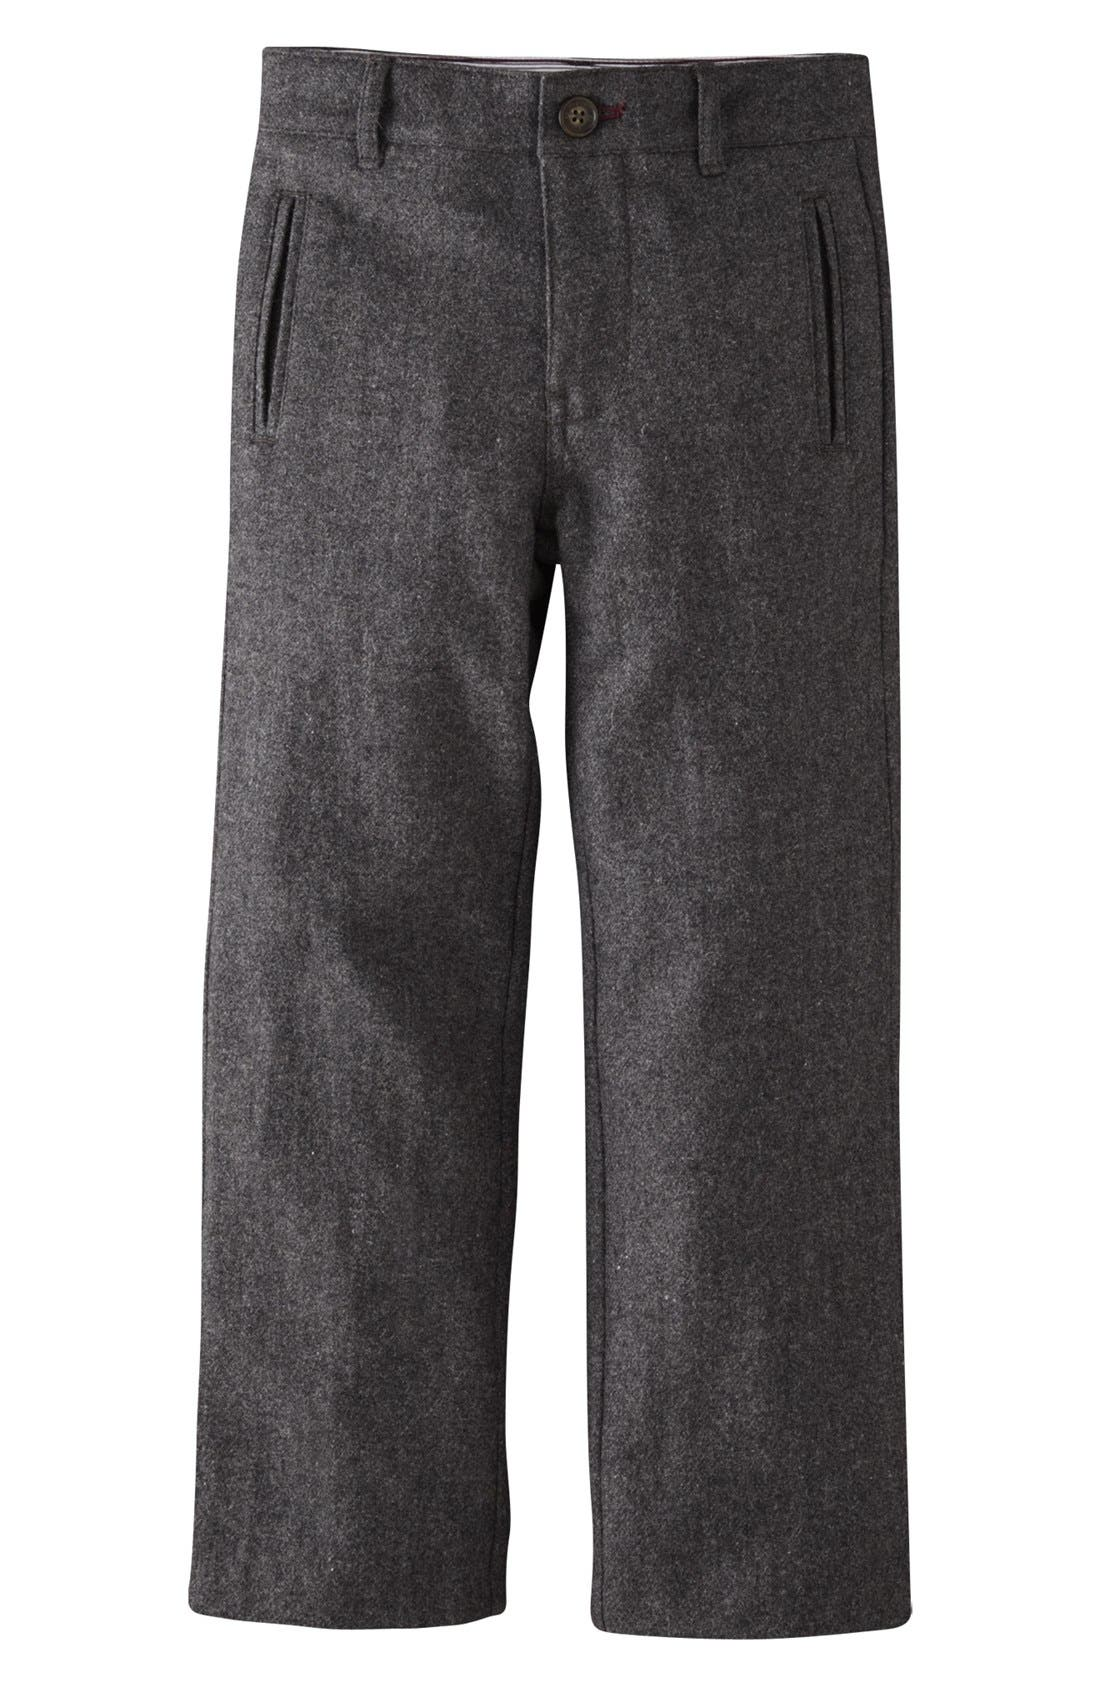 Alternate Image 1 Selected - Mini Boden Wool Trousers (Toddler Boys)